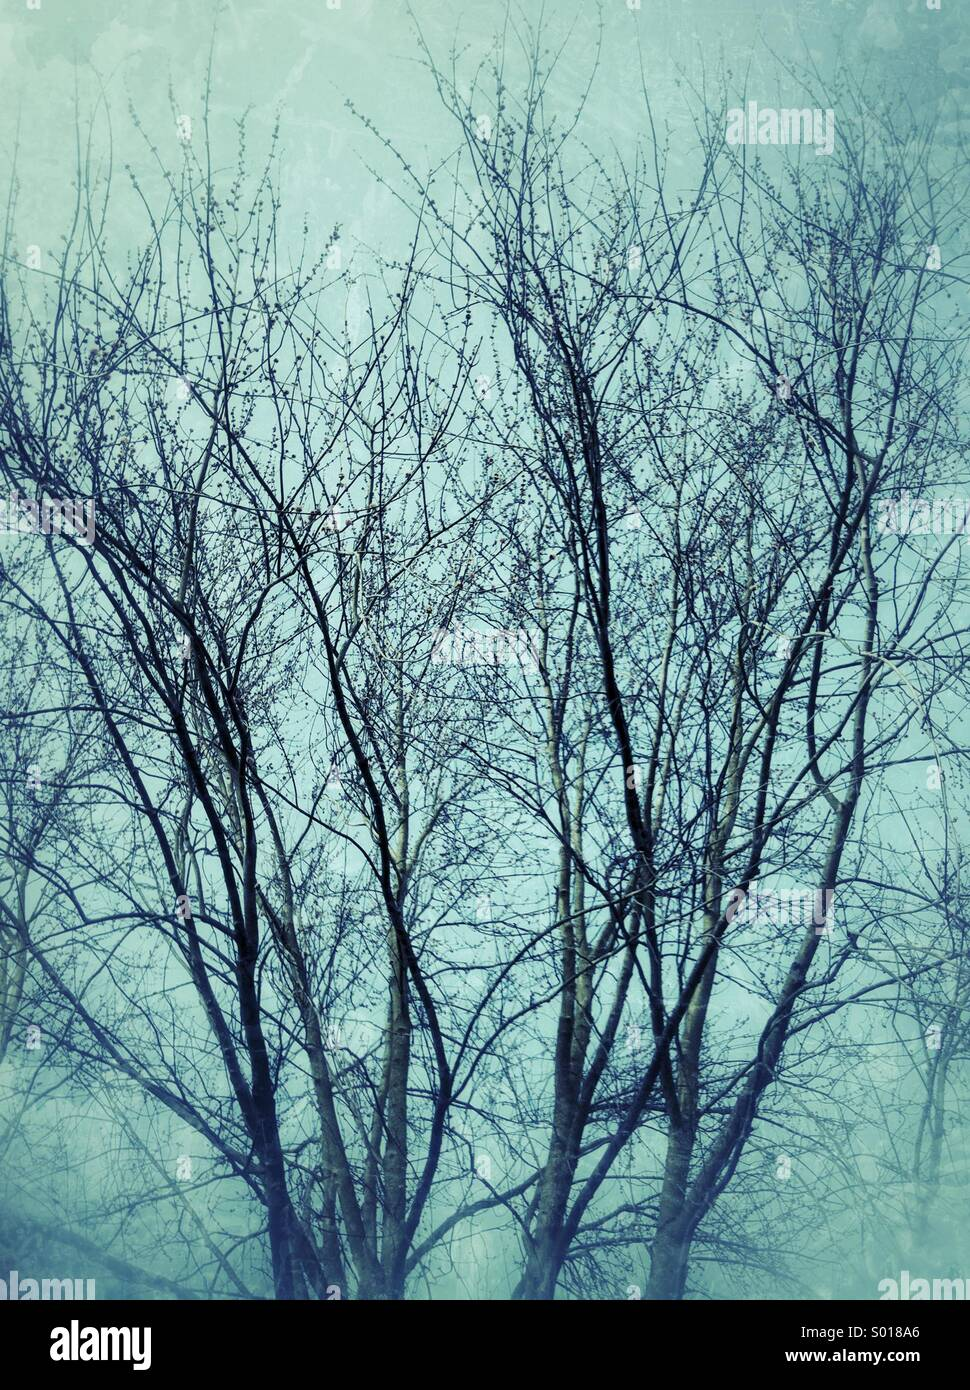 Tree branches in winter - Stock Image